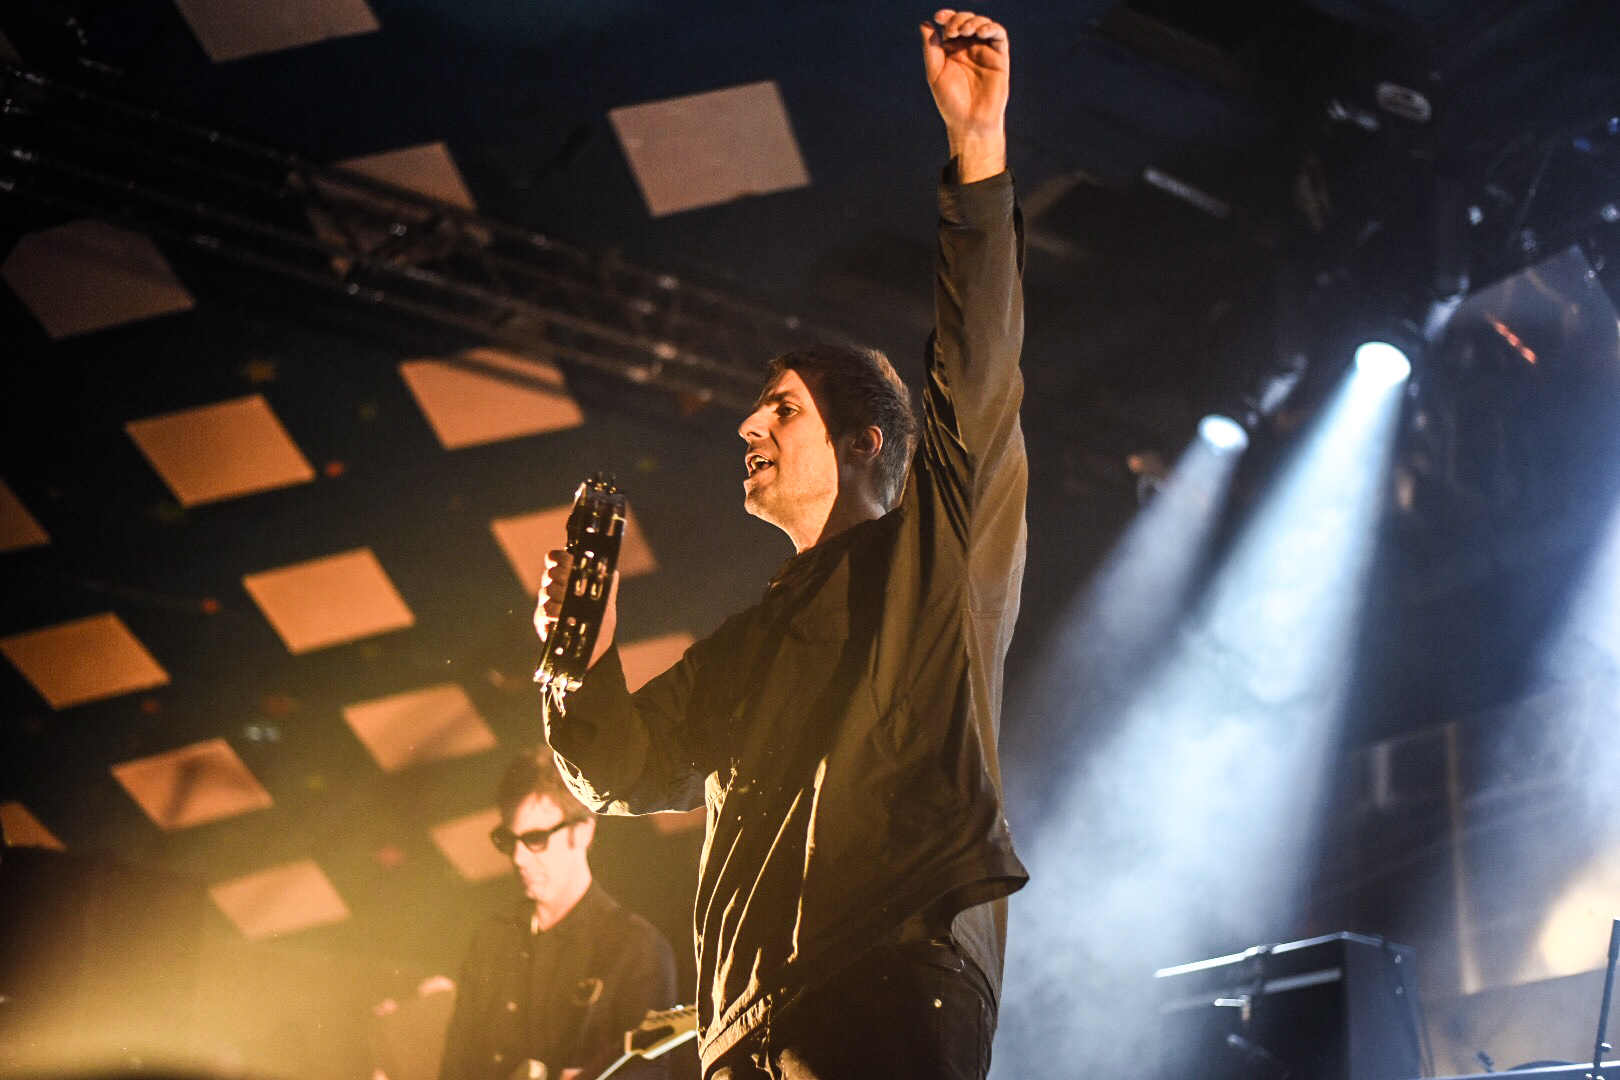 15 - Liam Gallagher performing to Sold Out Crowd at Glasgow's Barrowlands as part of As You Were Tour - 11-06-2017 - Pic By - Calum Buchan Photography - Copy.jpg